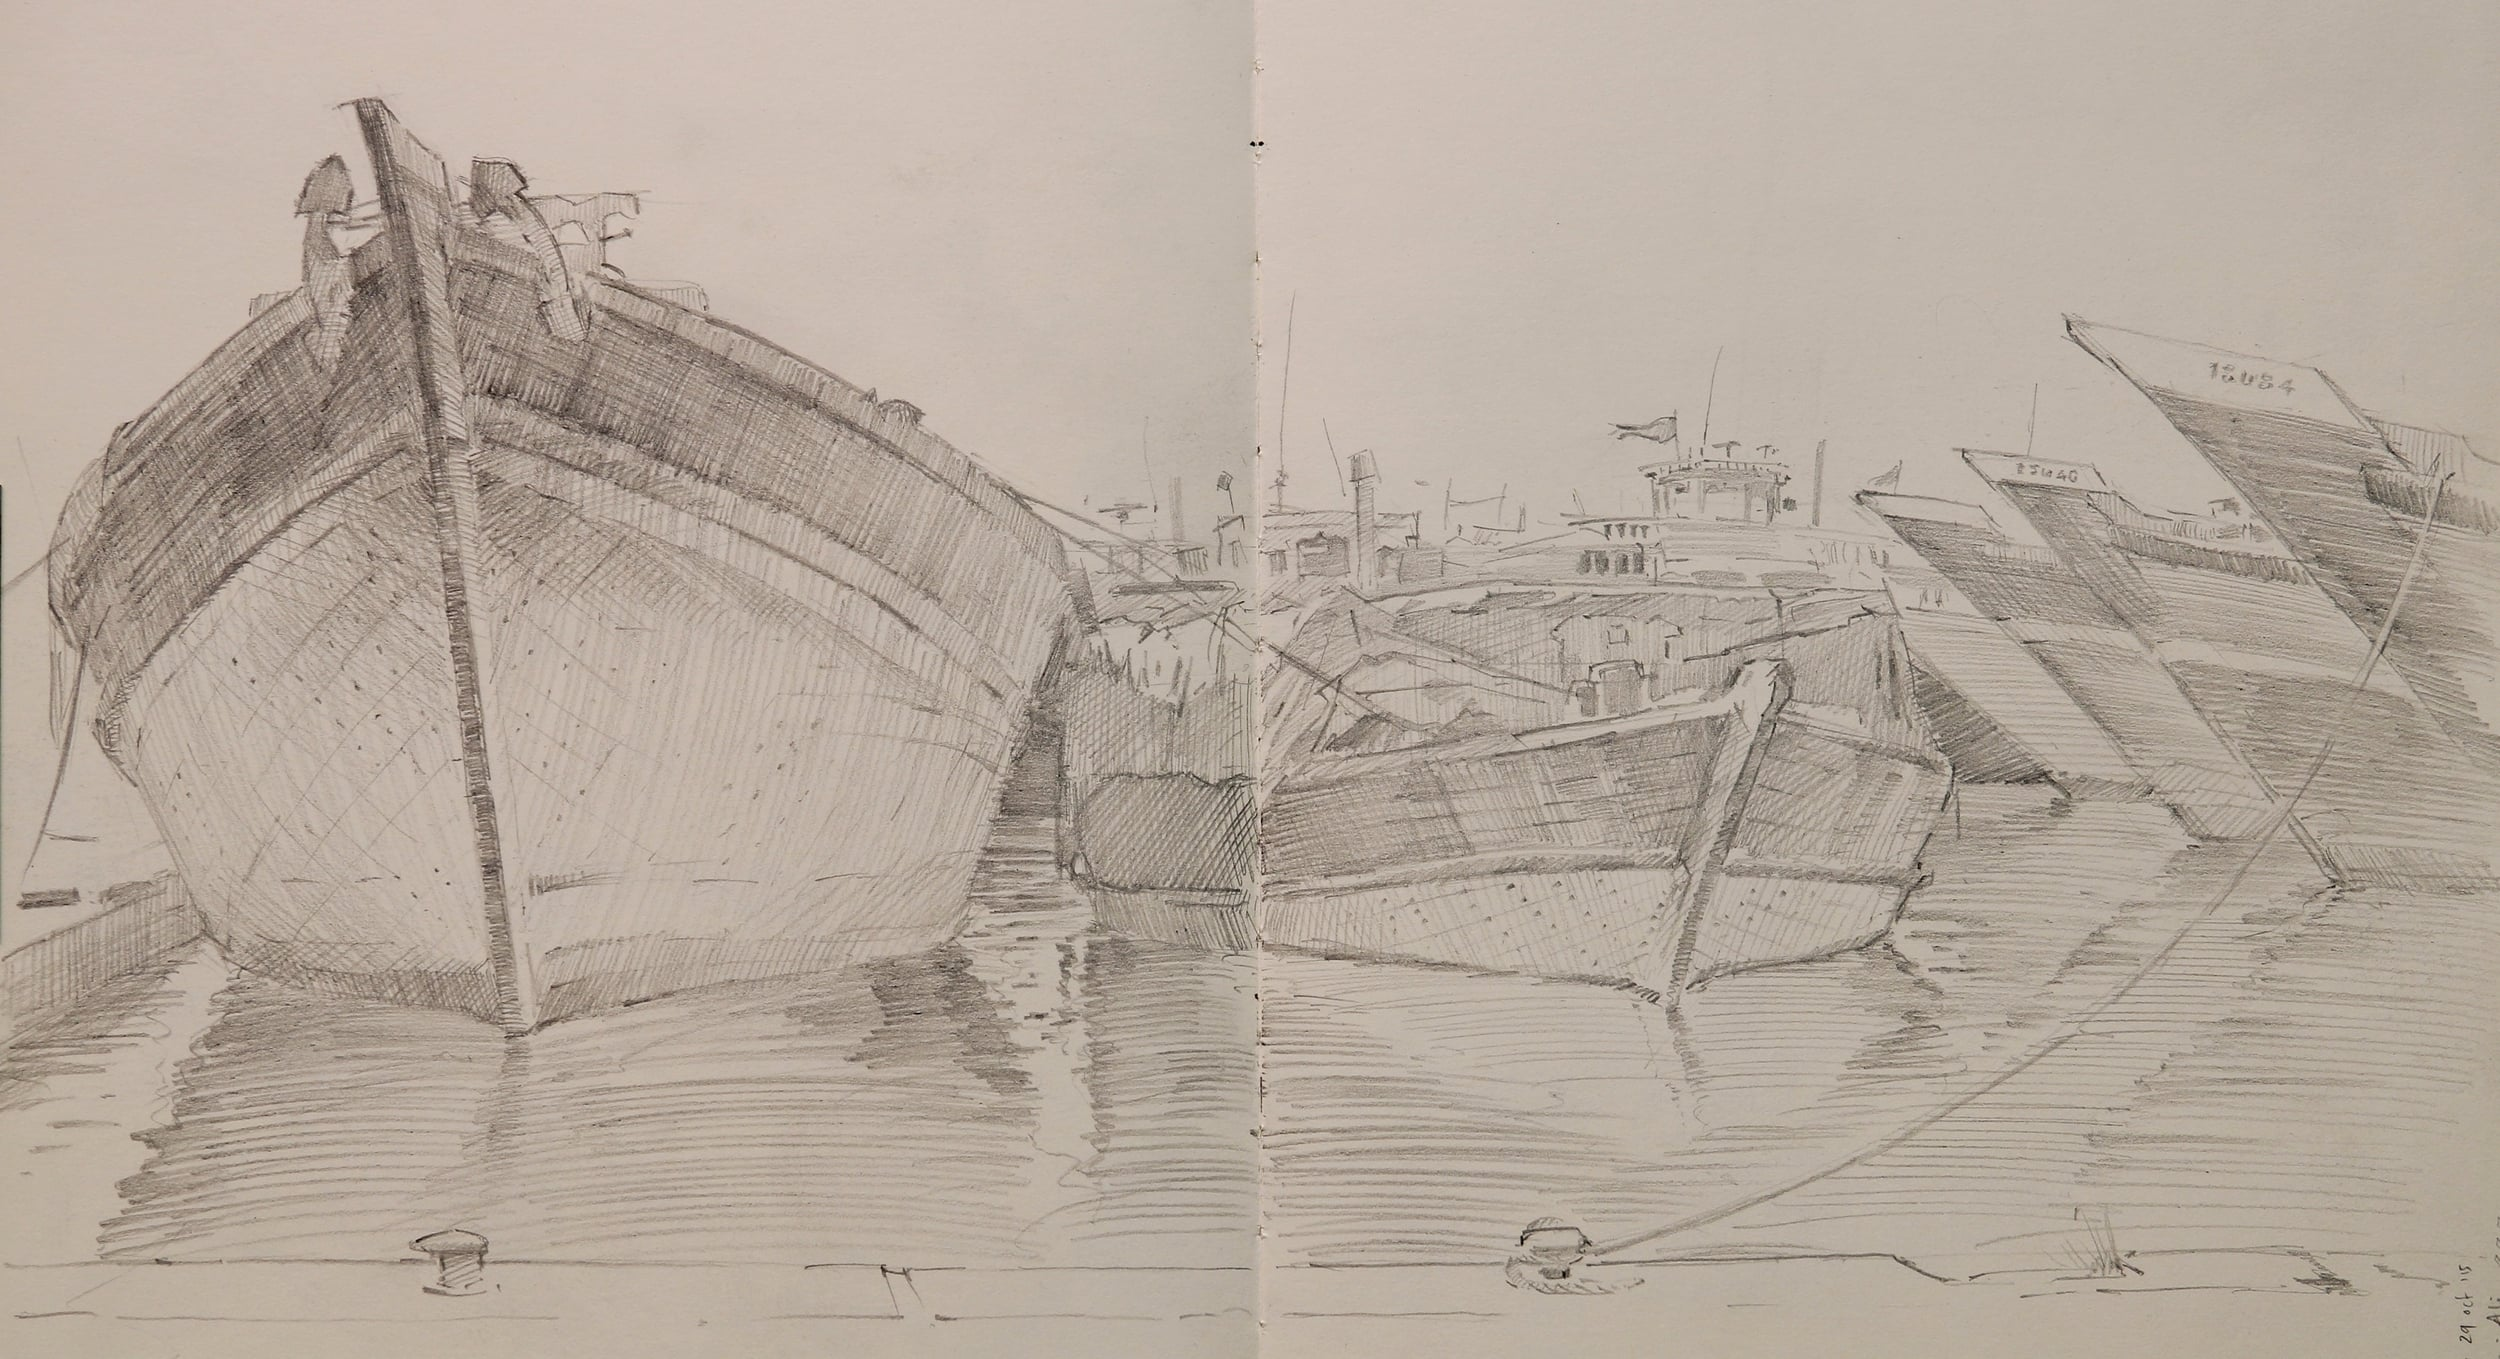 Pencil sketch of Barges in Dubai.